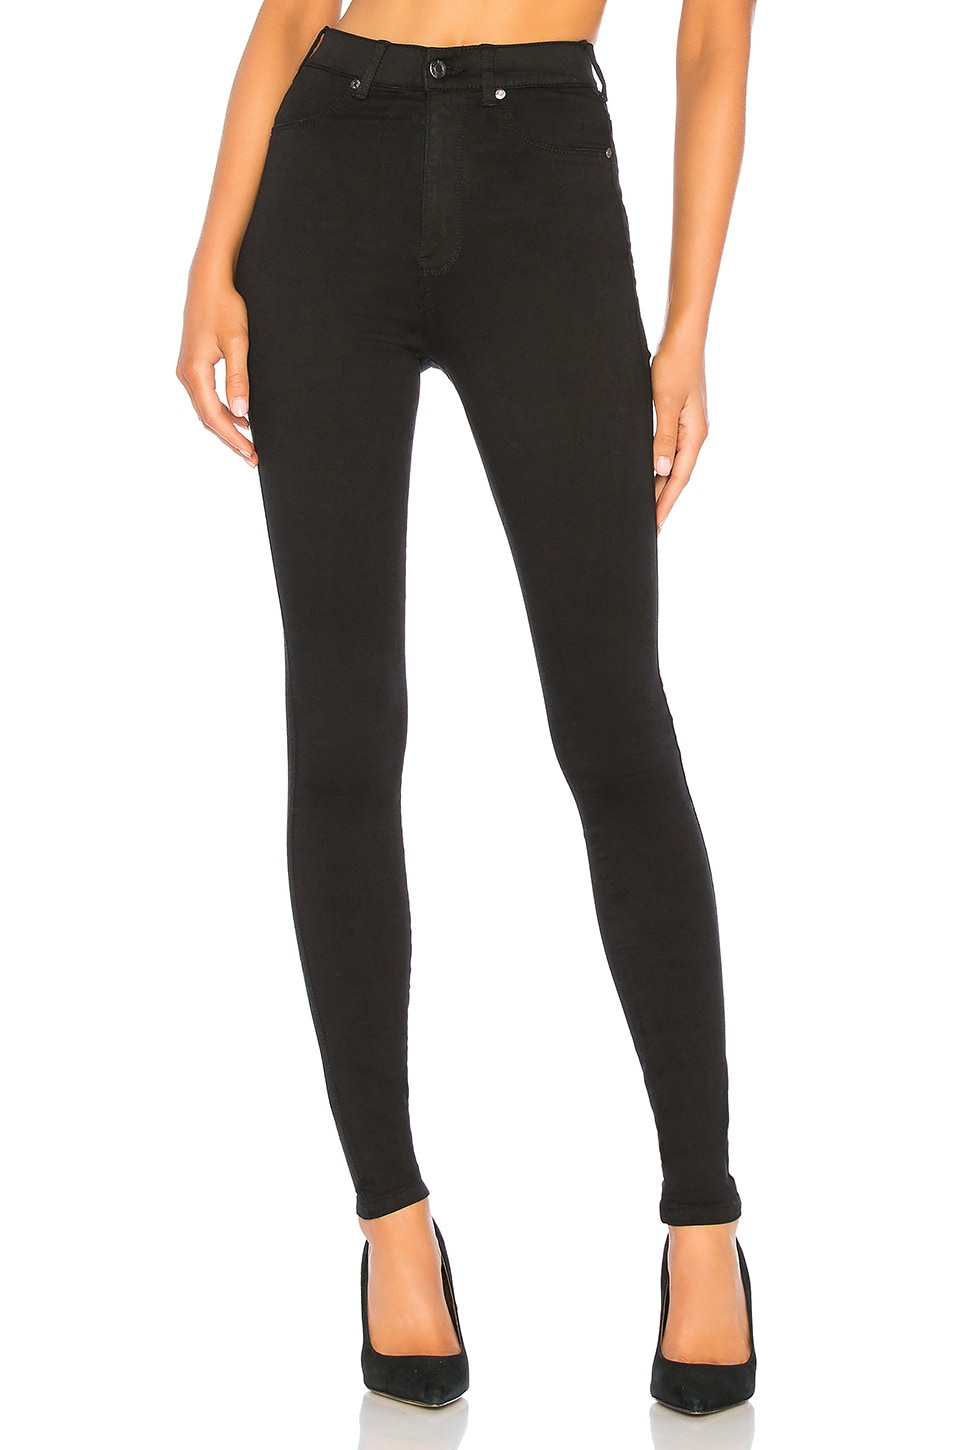 Dr. Denim High Waist Solitaire Jean in Black